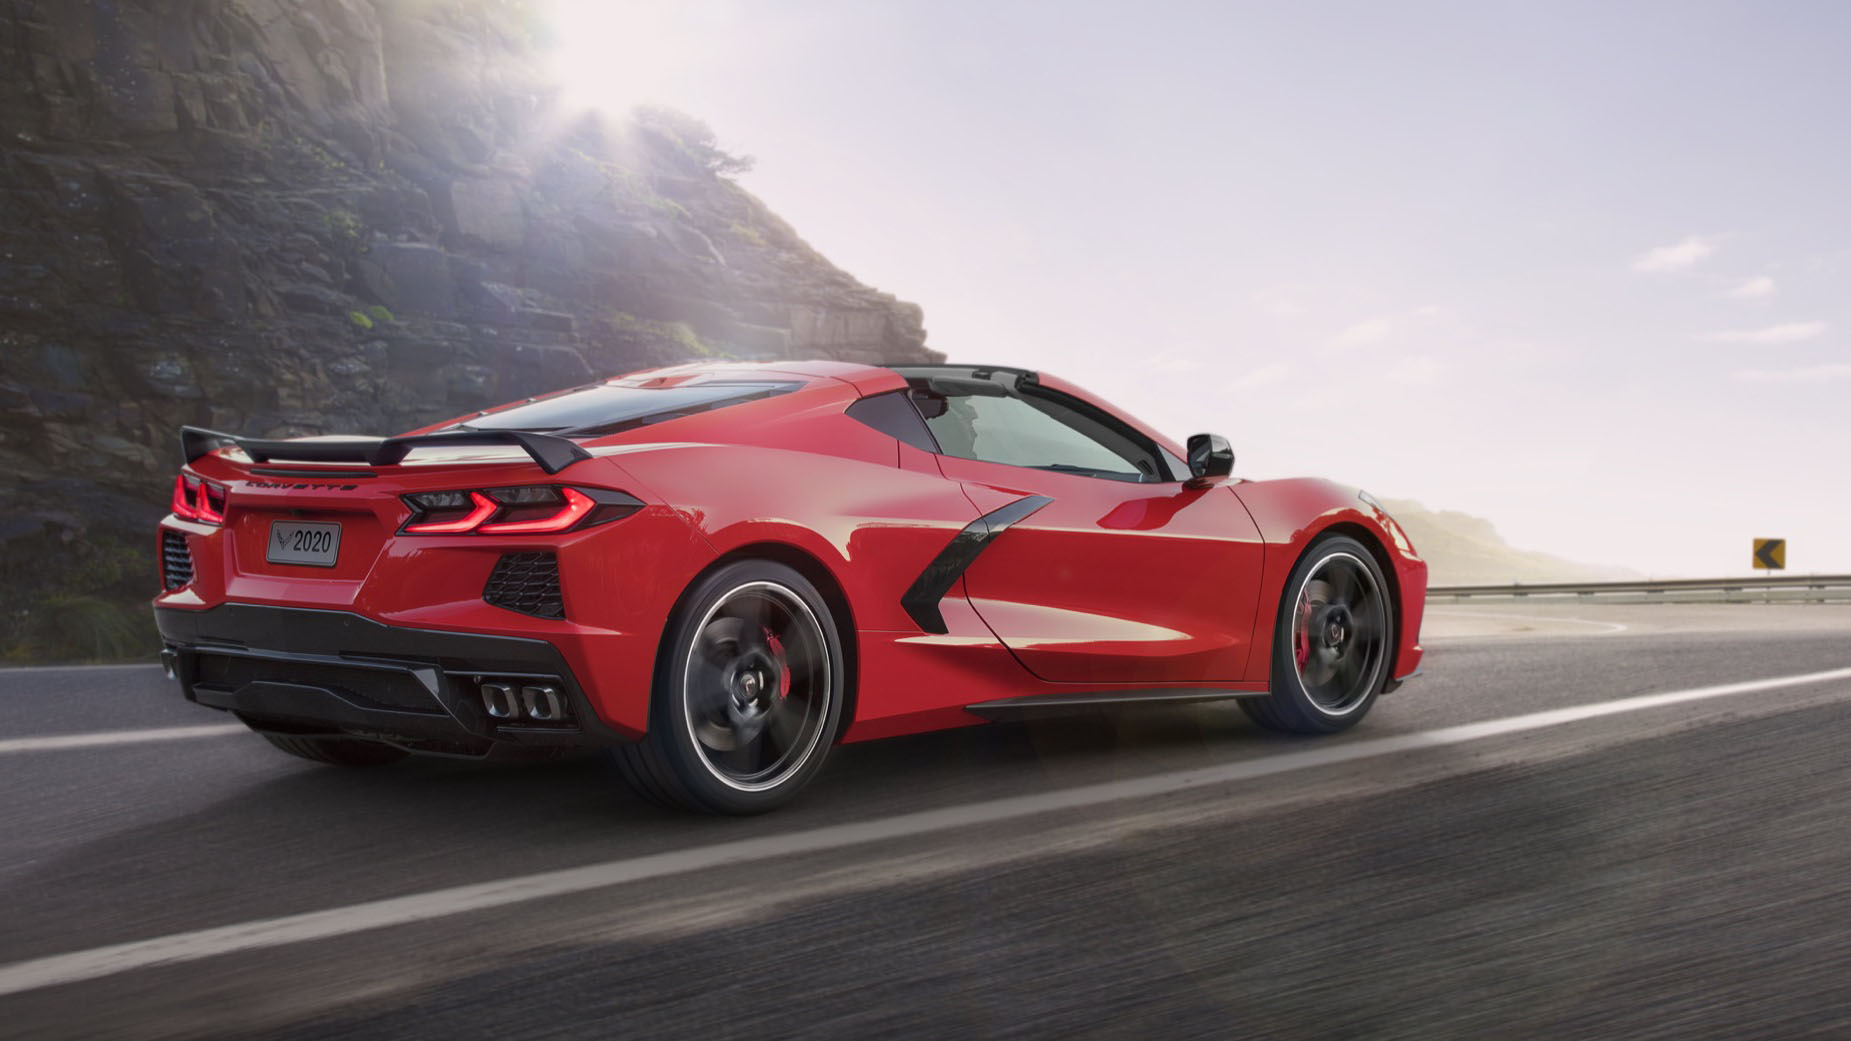 2020 Chevy Corvette Stingray vs the world: How it compares ...